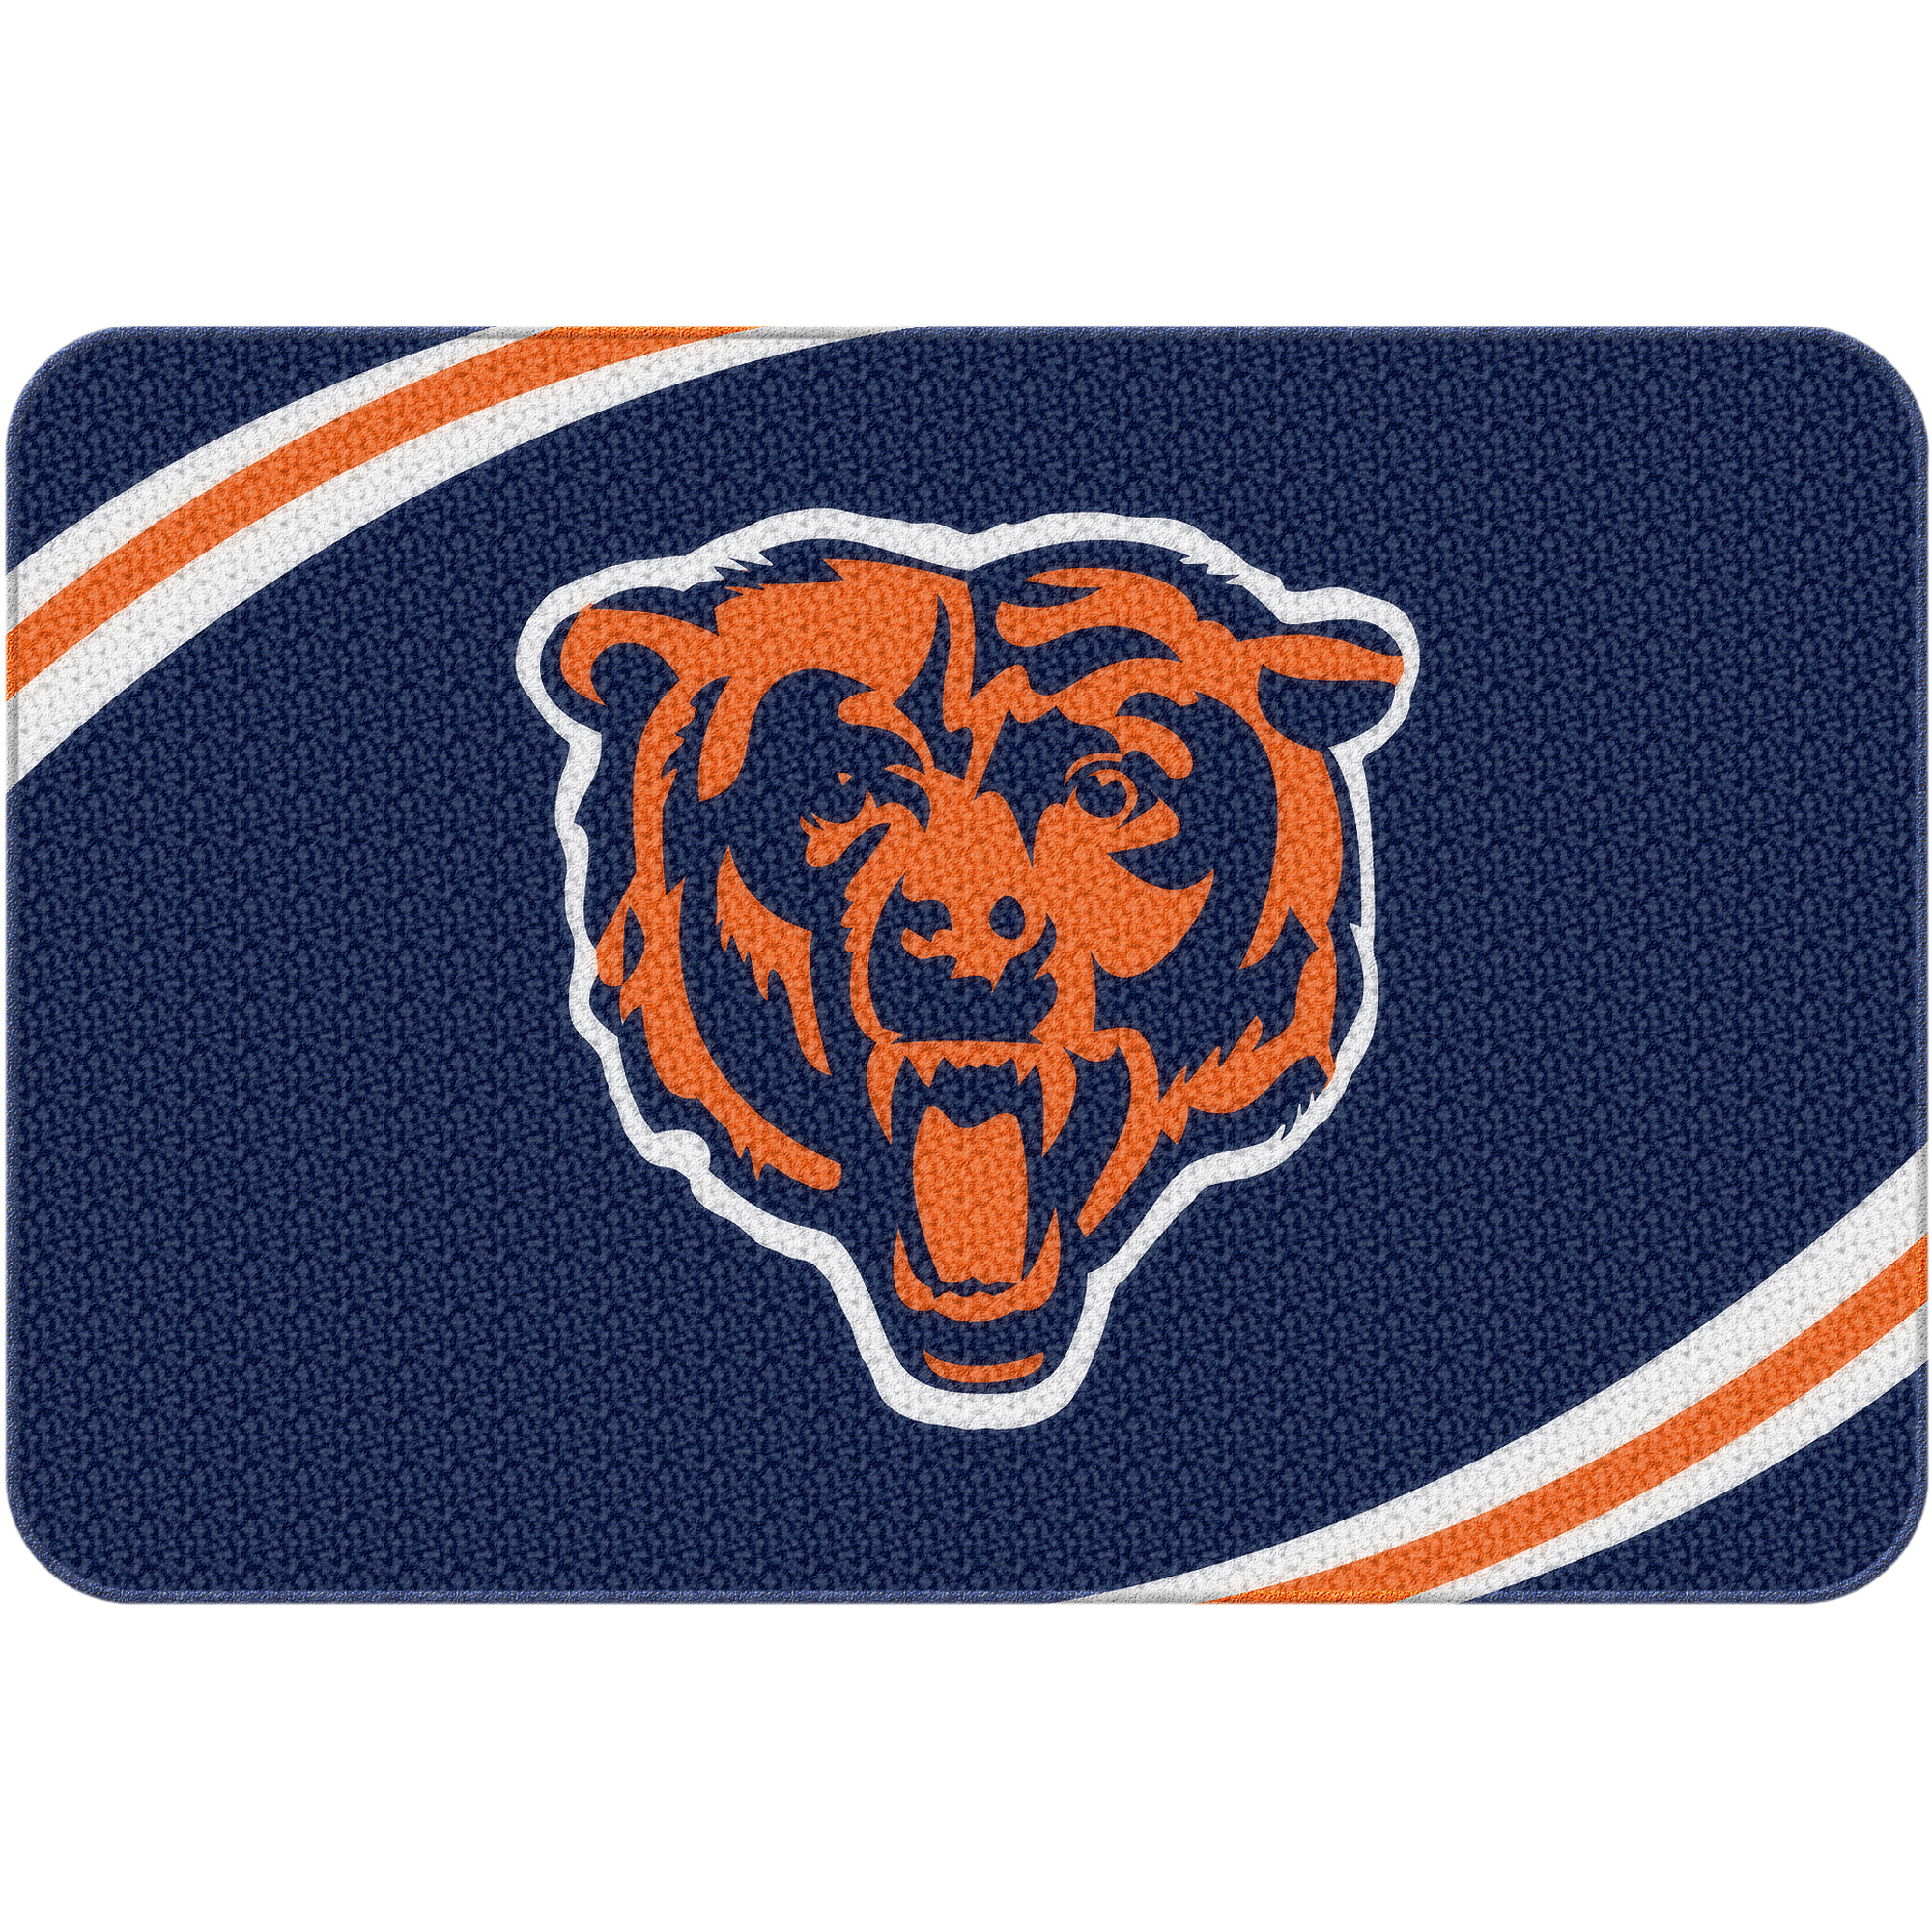 "NFL Chicago Bears 20"" x 30"" Round Edge Bath Rug"